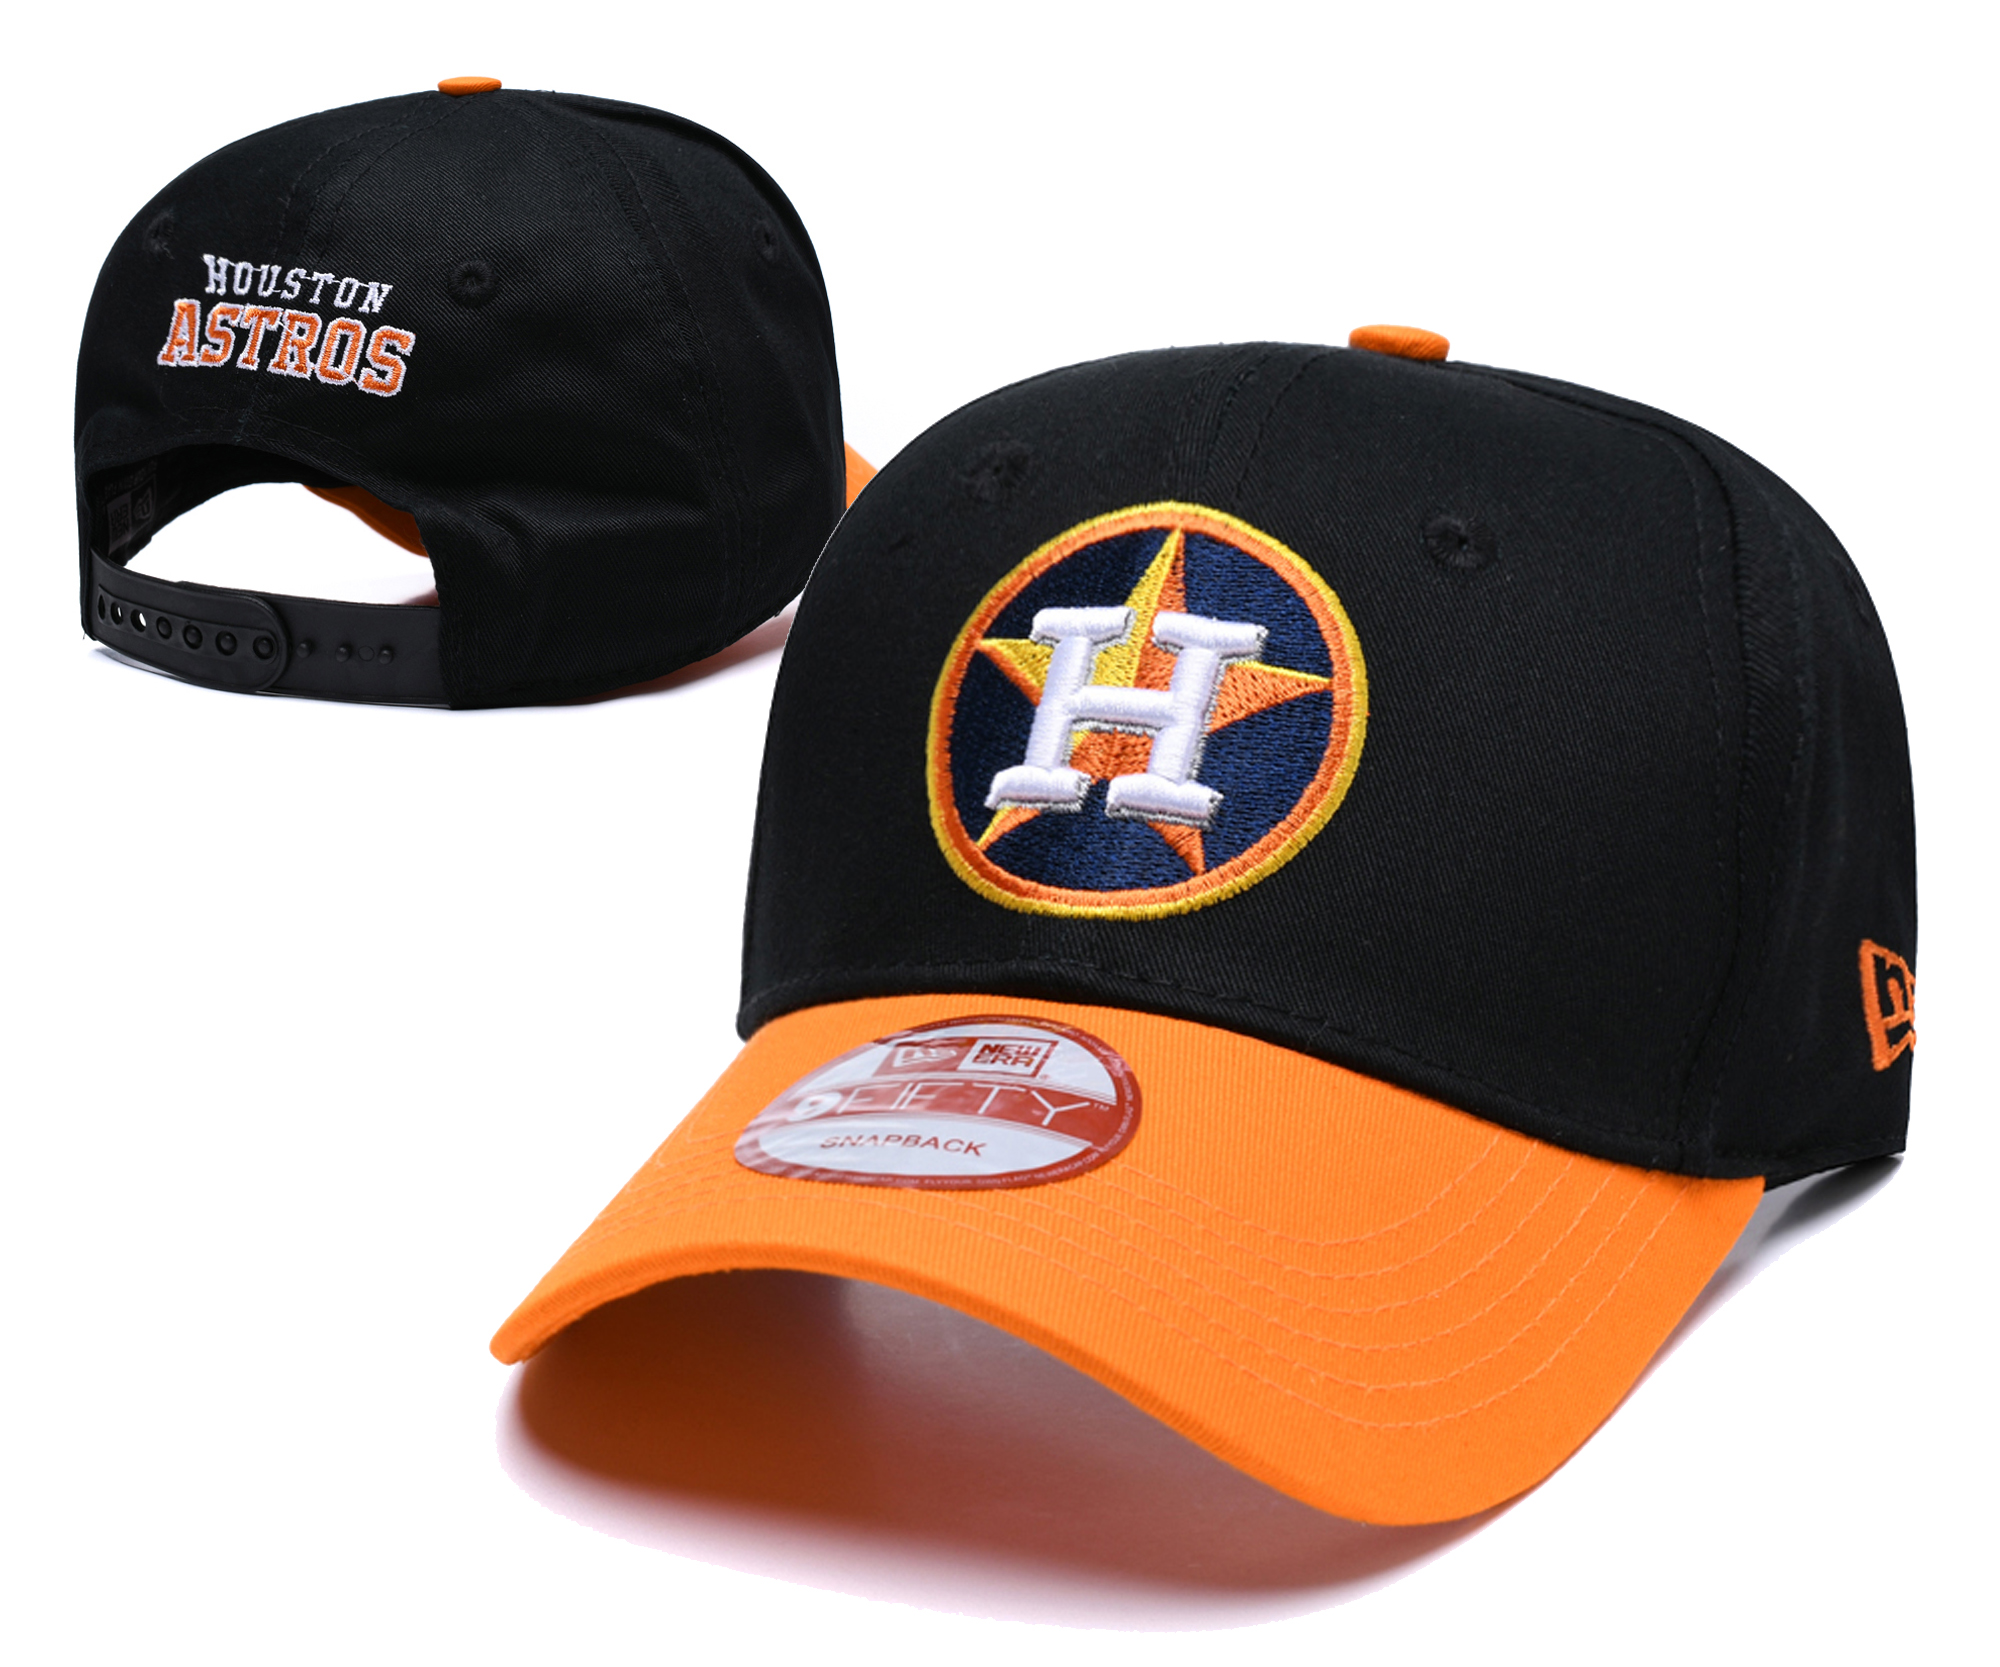 MLB Houston Astros 2019 Stitched Snapback Hats 019